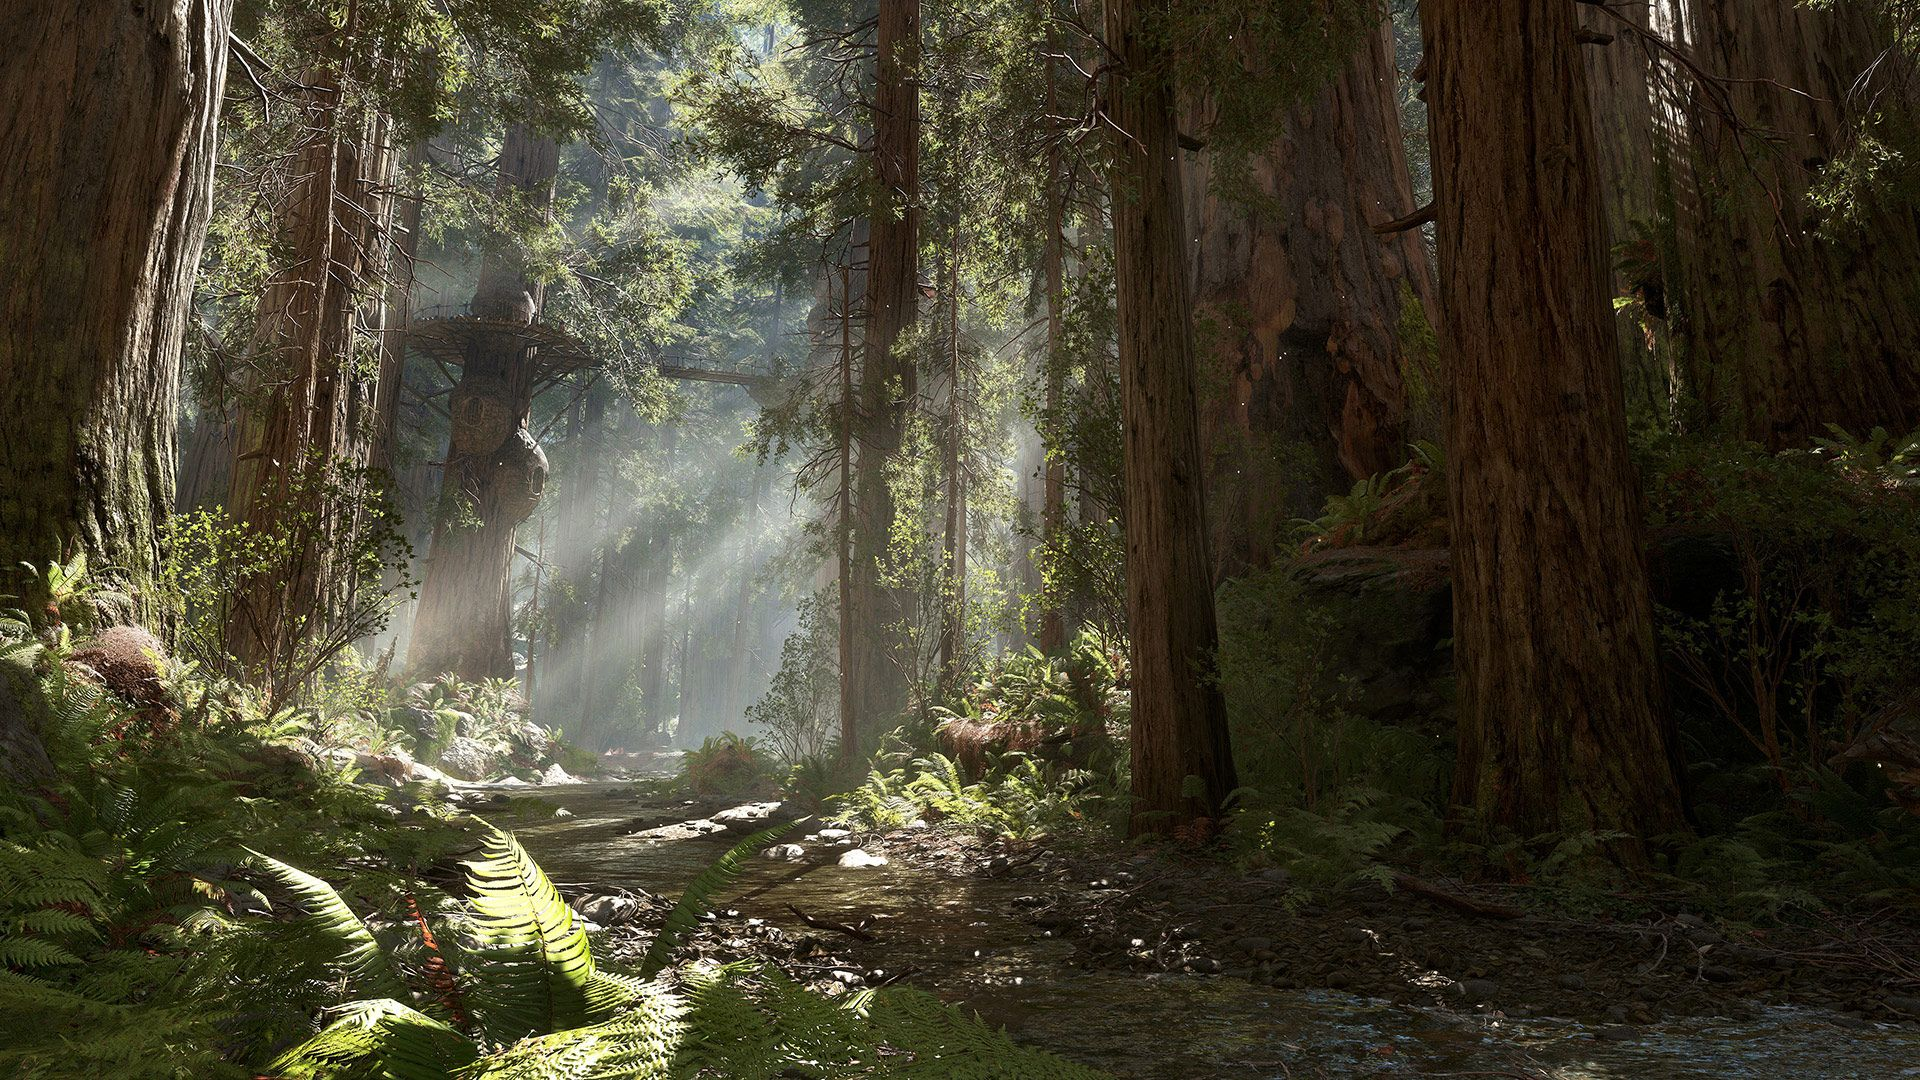 Forest moon of Endor.